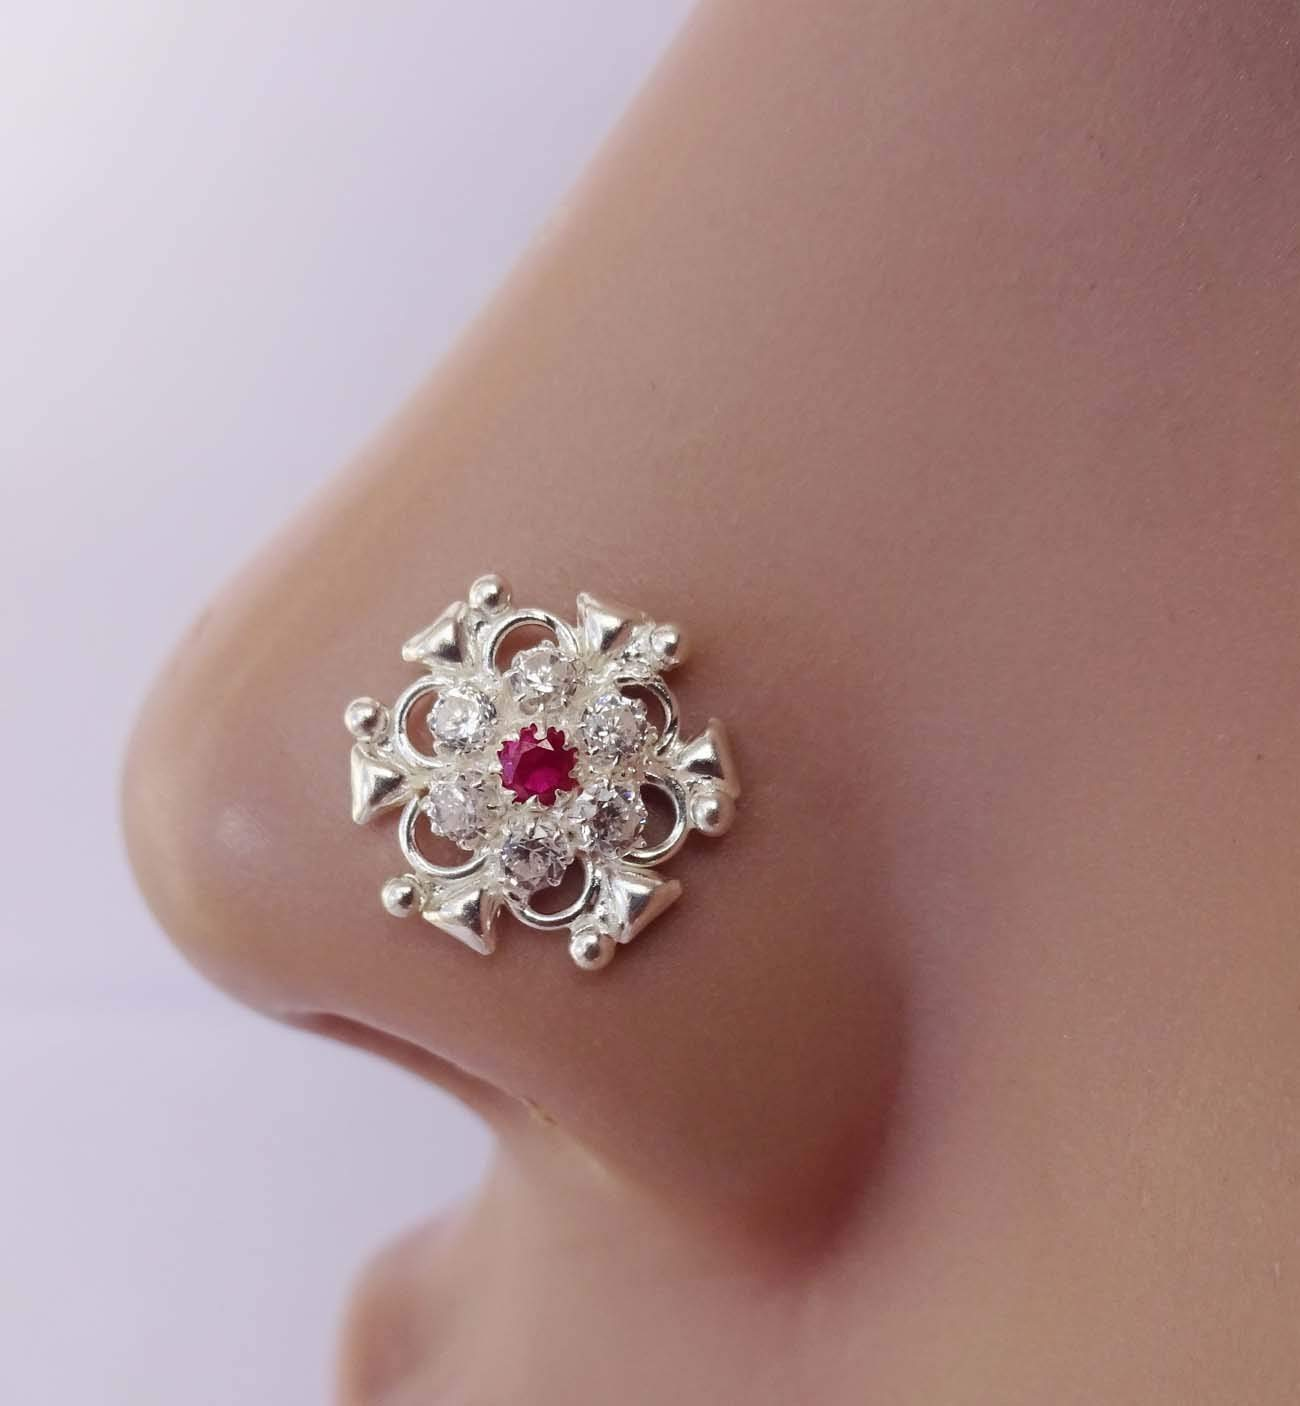 Ruby Stone Nose Stud,Silver Nose Cuff,Crystal Stone Nose Piercing,Silver Diamond Piercing,Monroe Nose Ring,Tiny Gold Piercing,Wedding Nose Screw,CZ Clear Nose Stud,Crock Screw Nose Stud(TEJ827)